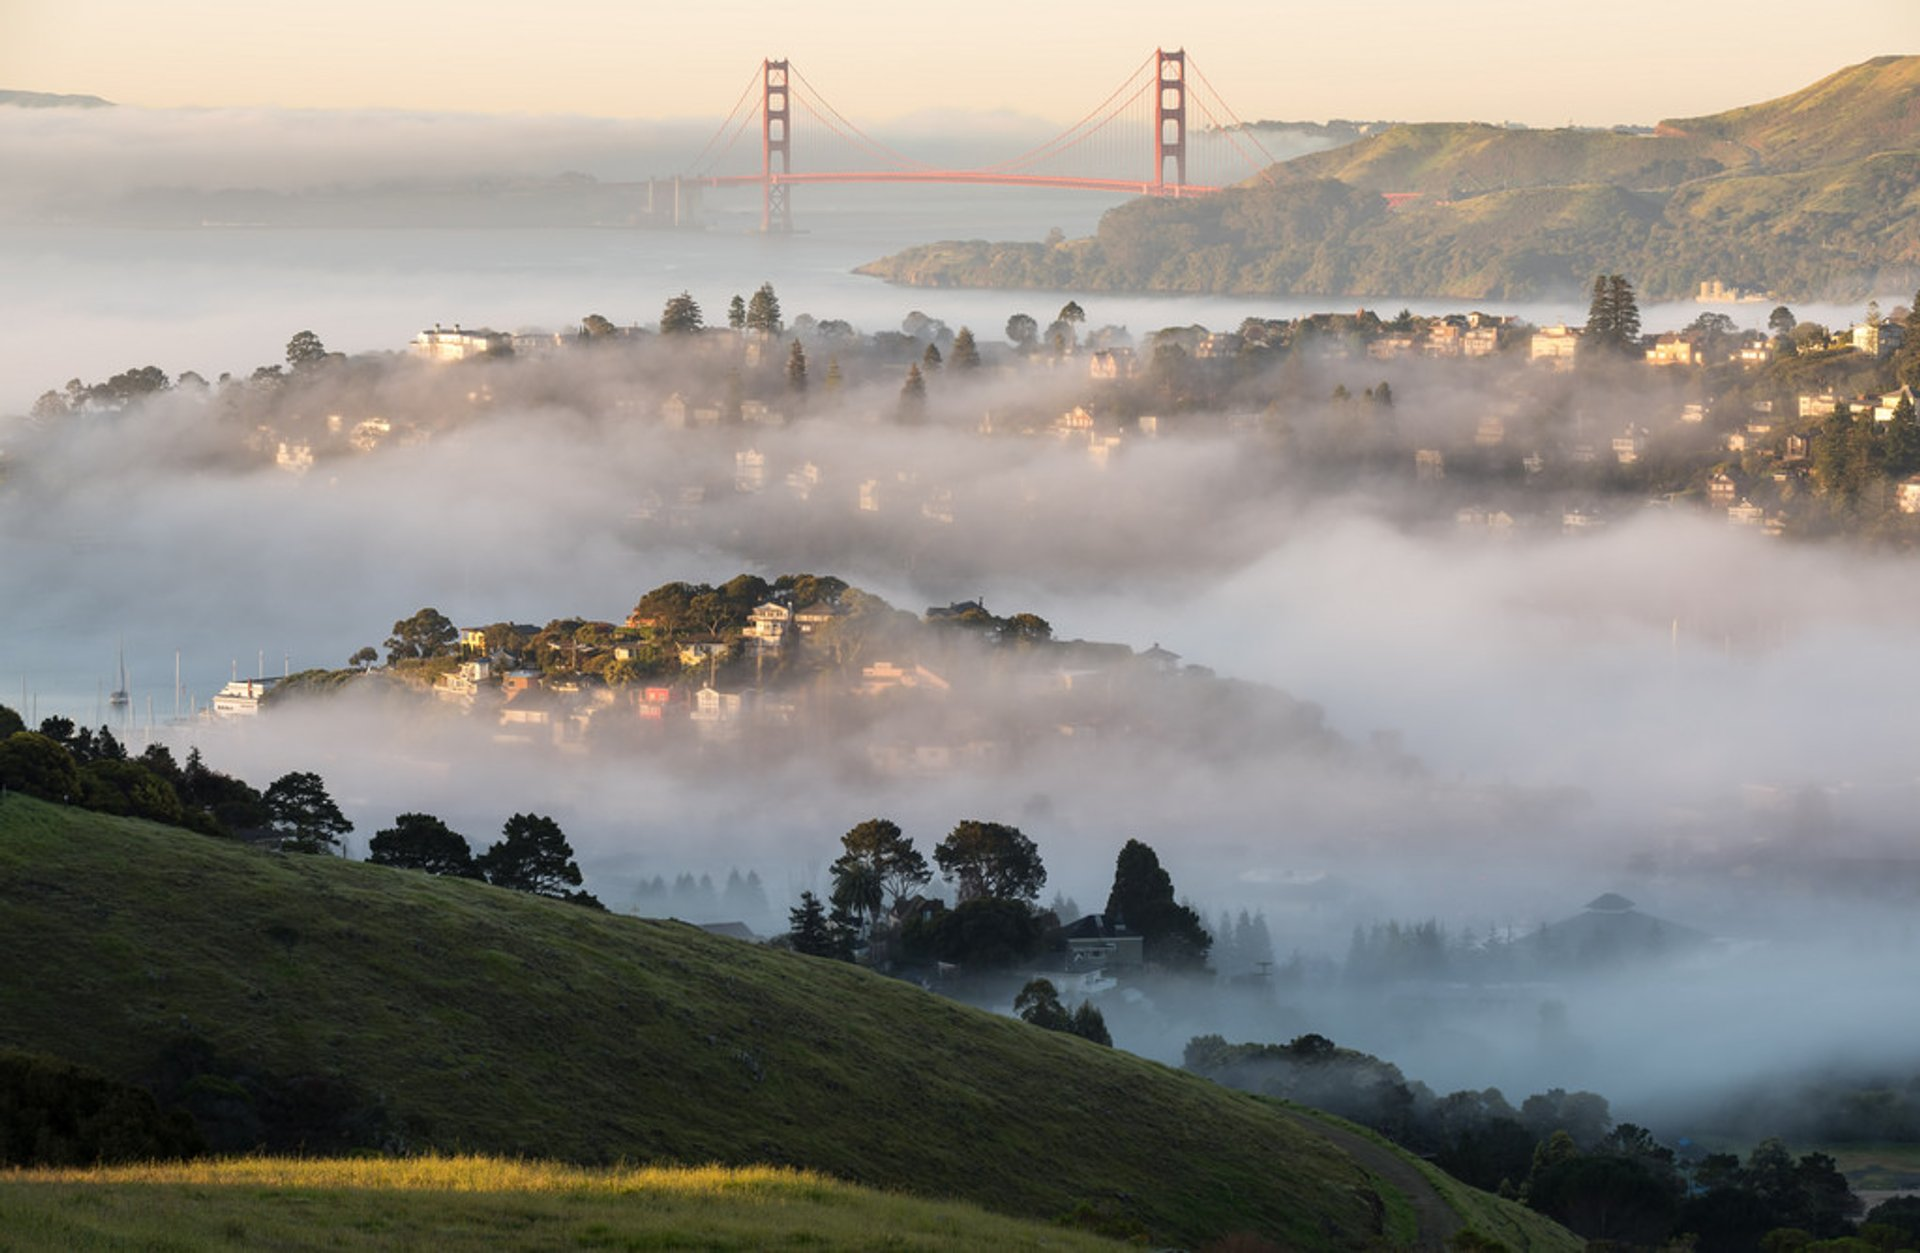 Best time to see Fogs in San Francisco 2020